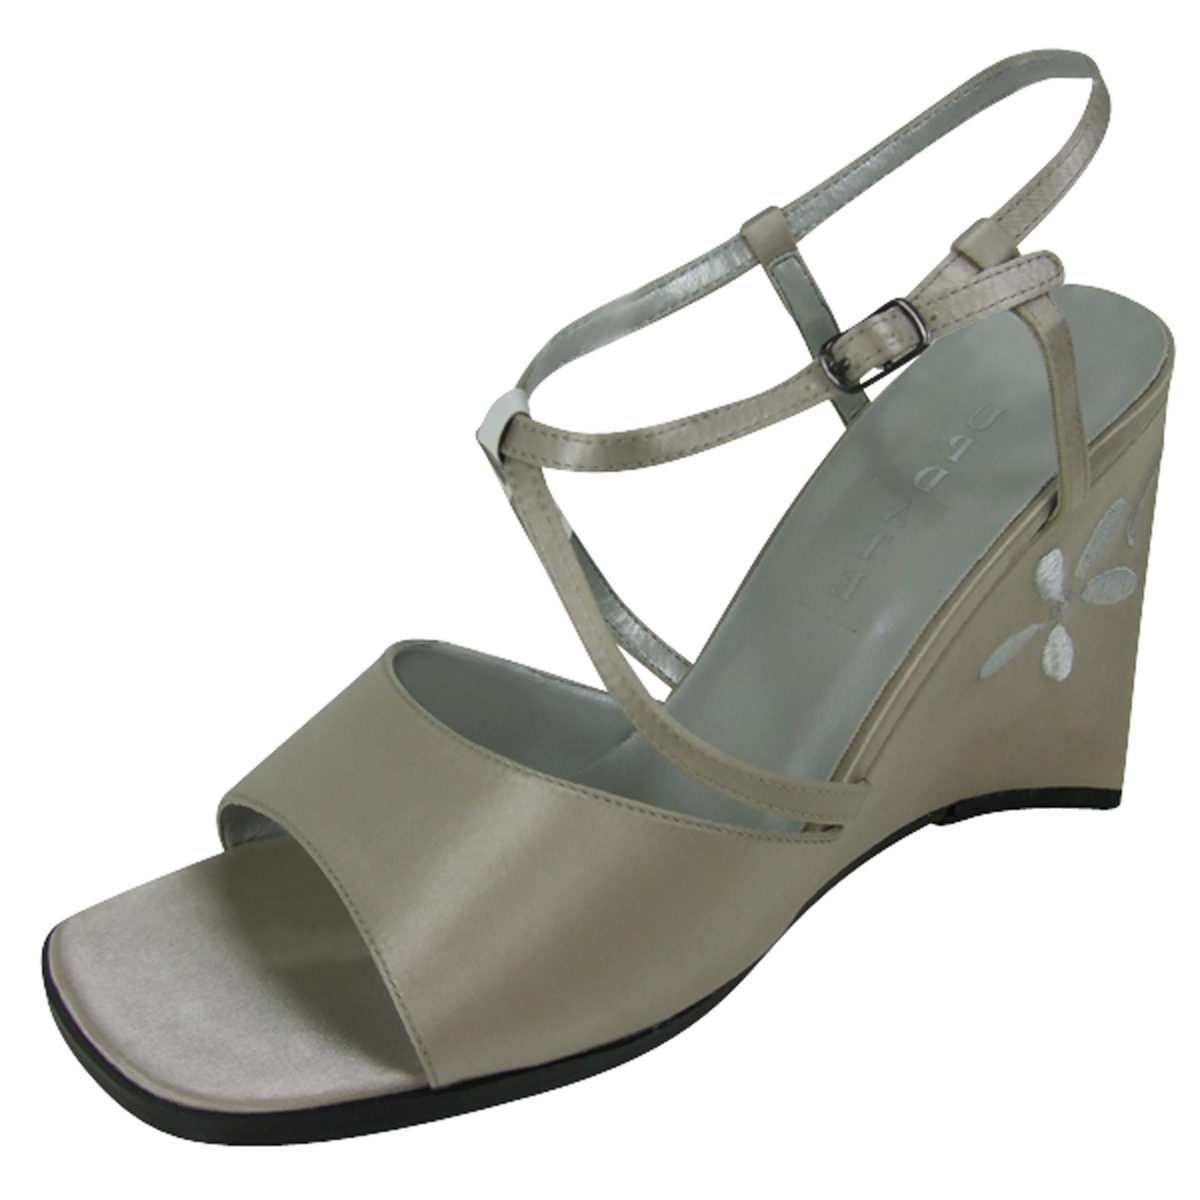 Ladies Satin Wedge Dress Sandals Shoe Womens Party Wedges